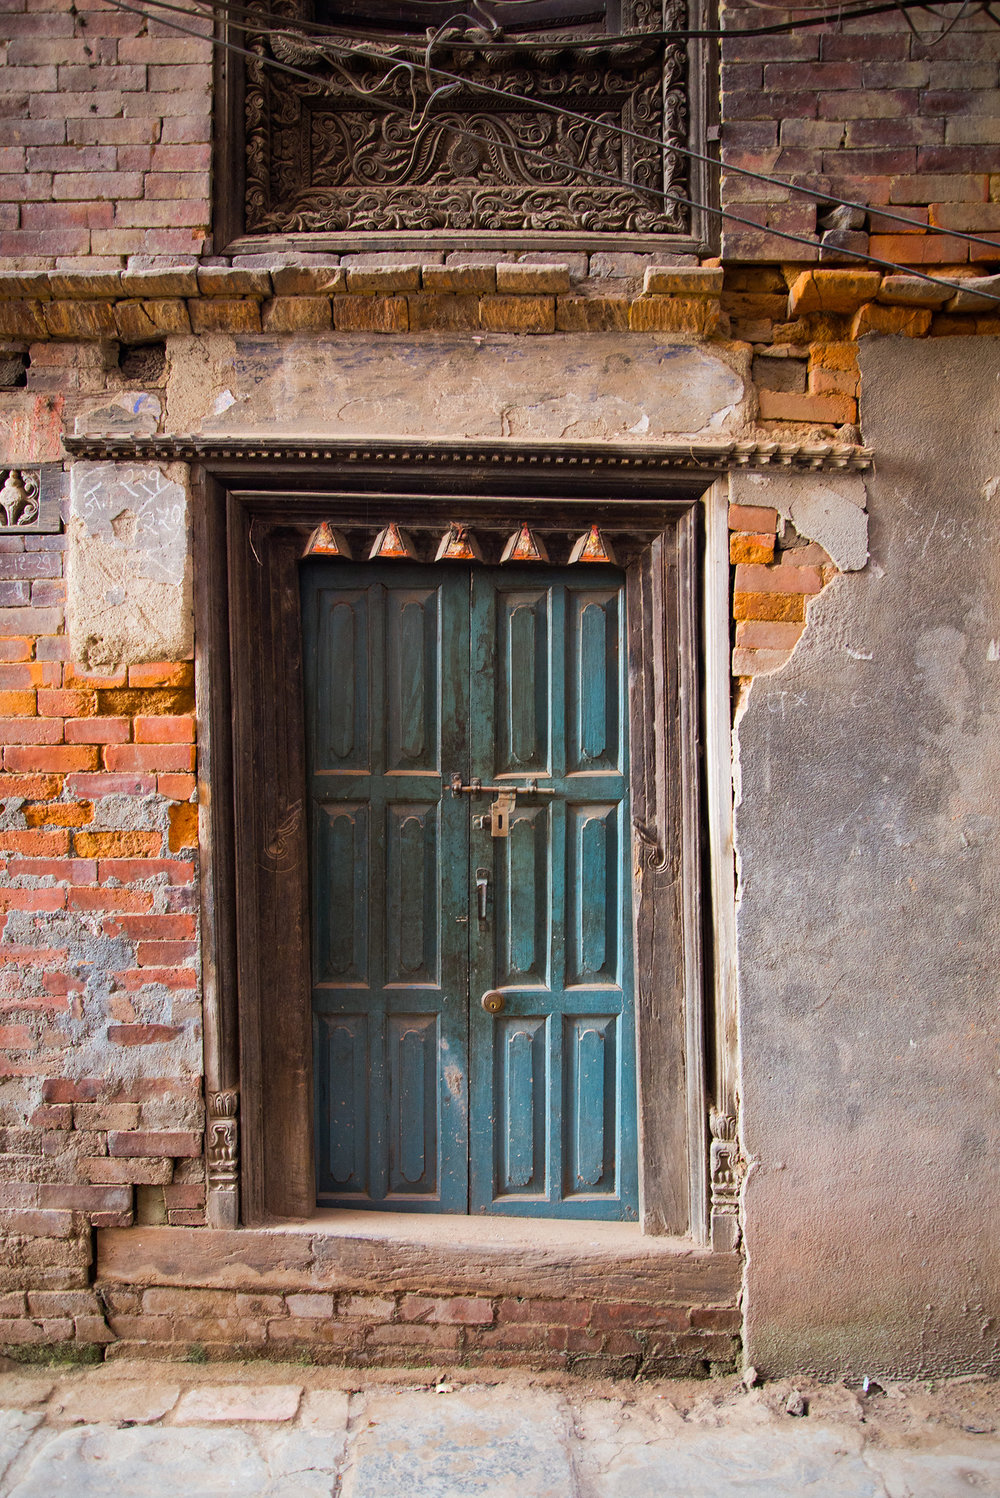 The contrast in color from the door to the bricks is gorgeous. I love all the detail in the frame, also the cracks leading up the side of the building. It's beautiful!